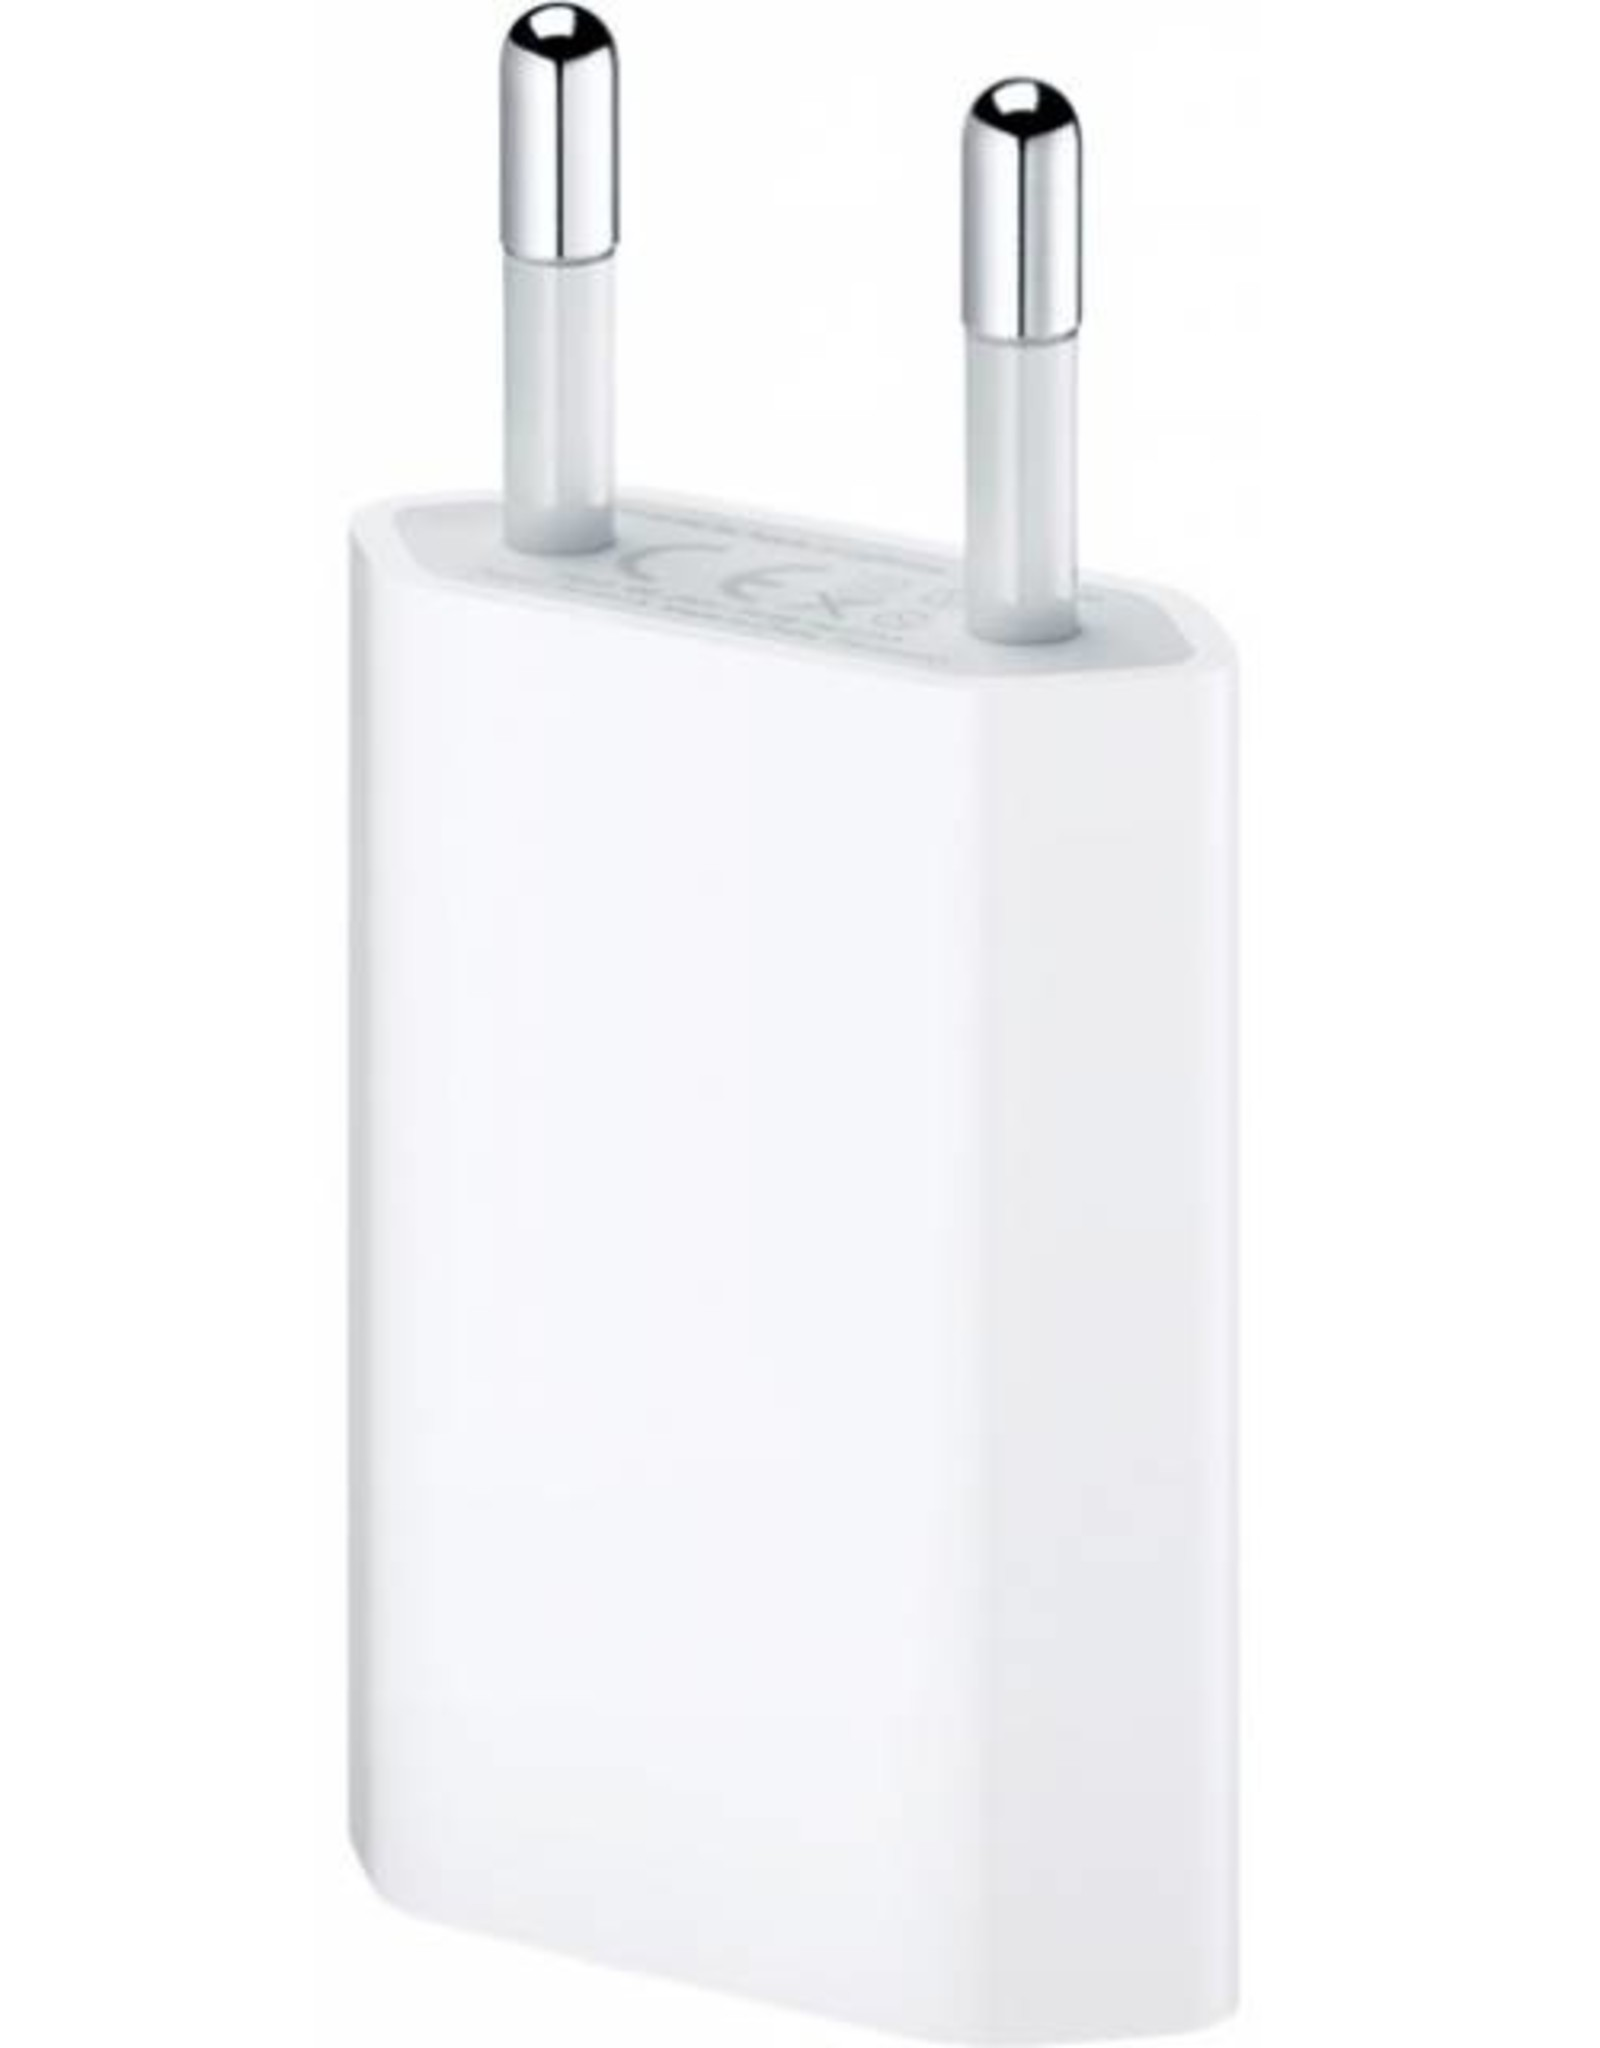 Apple Apple USB Power Adapter White